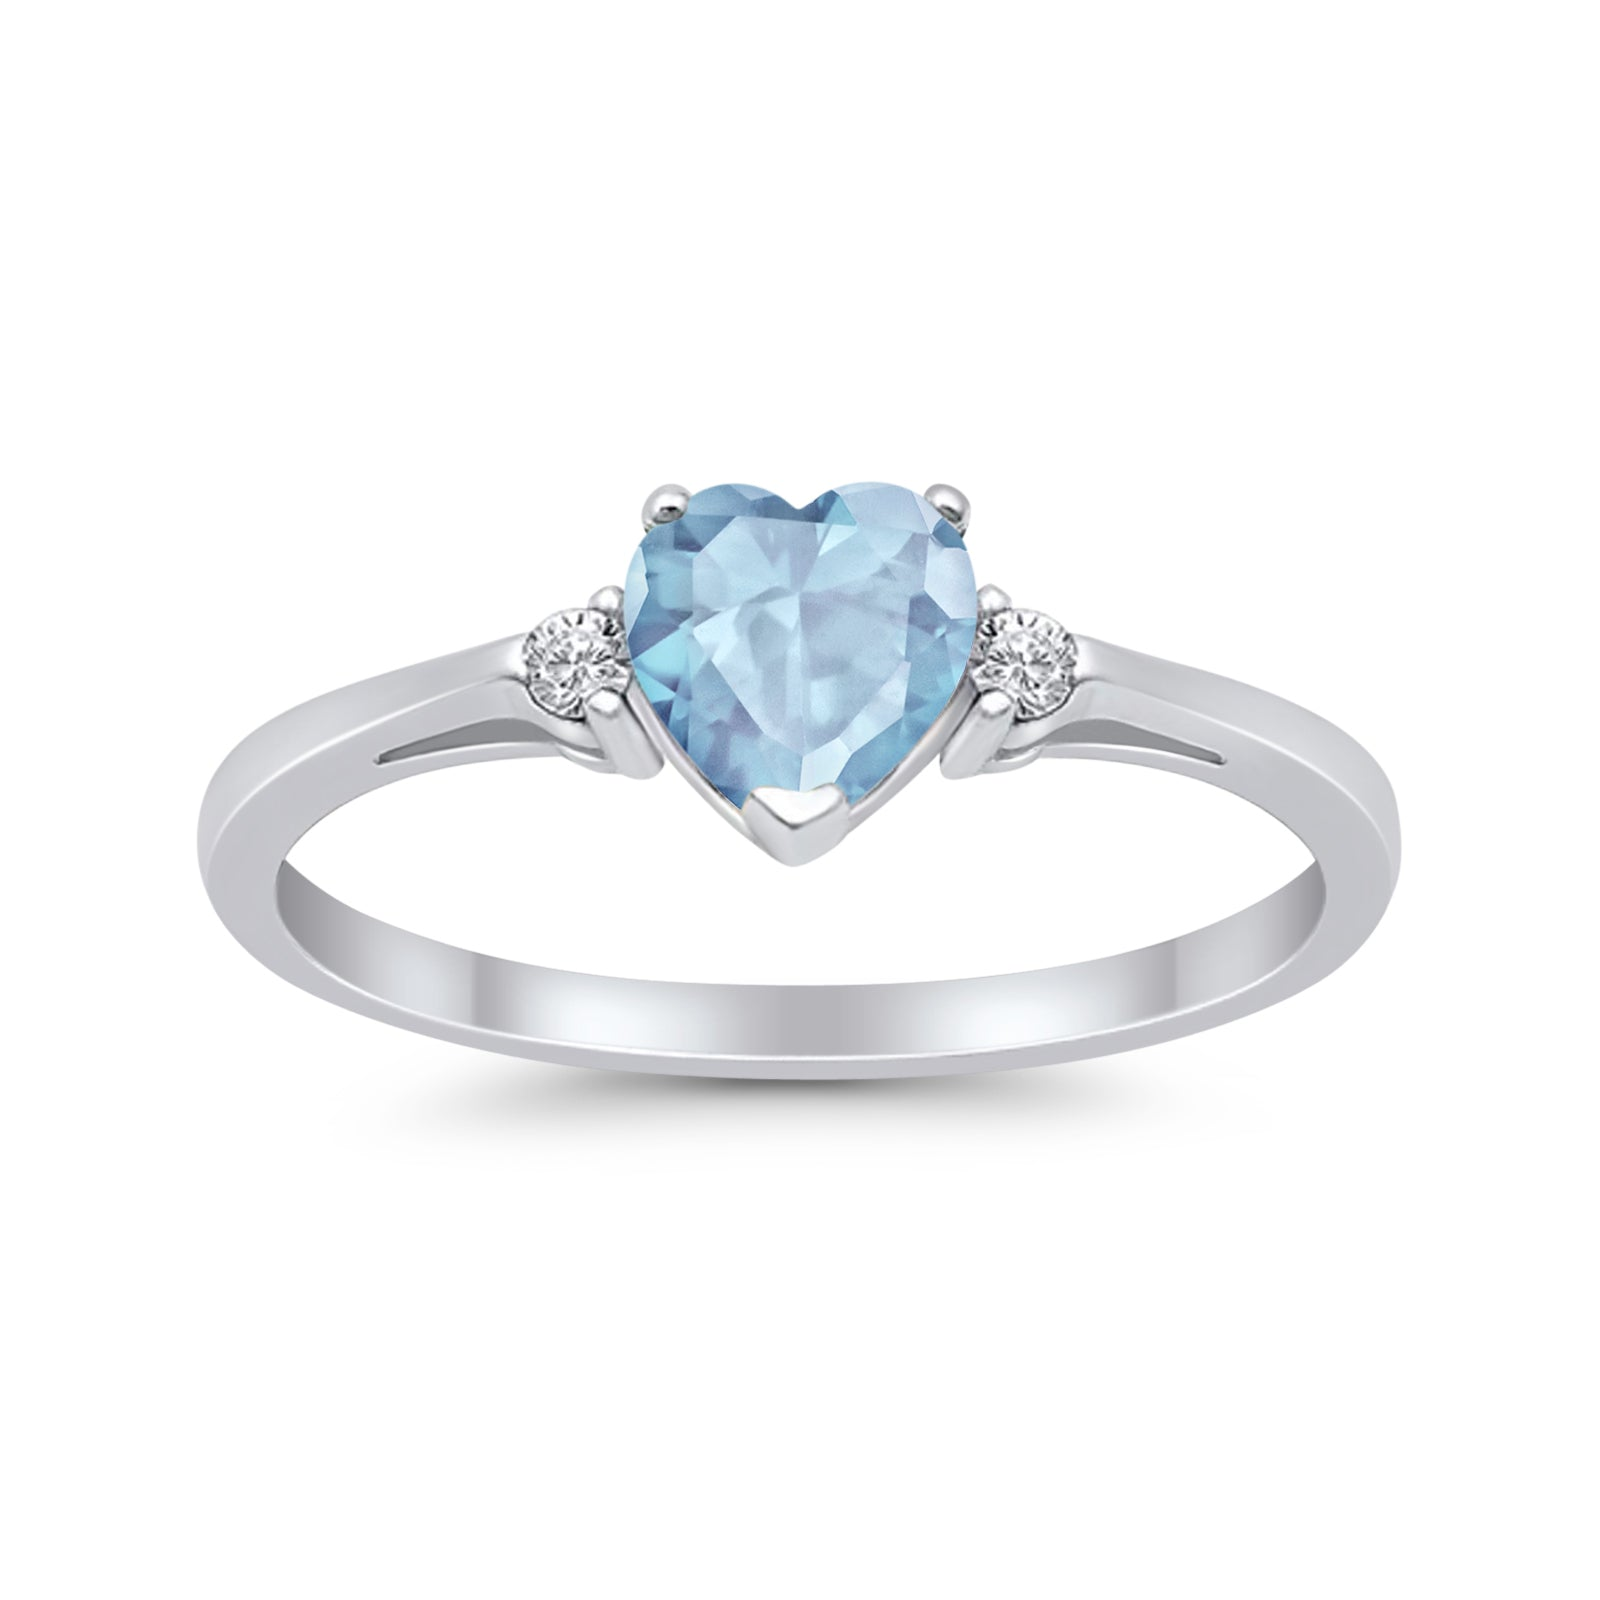 Heart Promise Engagement Ring Simulated Aquamarine CZ 925 Sterling Silver